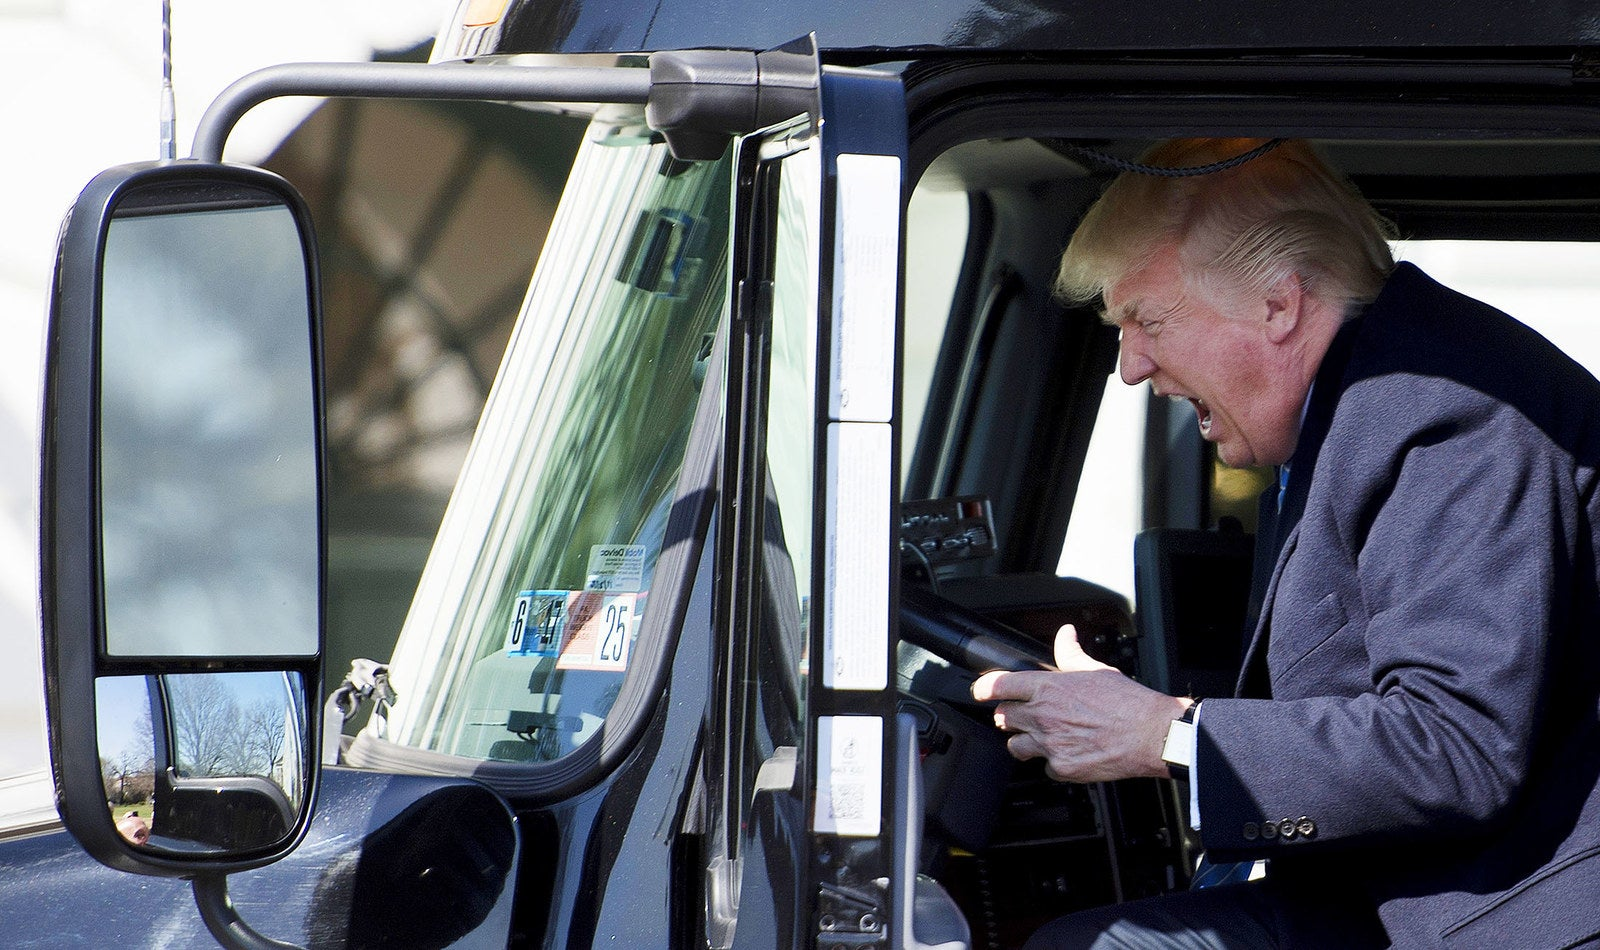 President Trump pretends to drive as he gets in an 18-wheeler and meets with truckers and CEOs regarding health care at the White House on March 23.